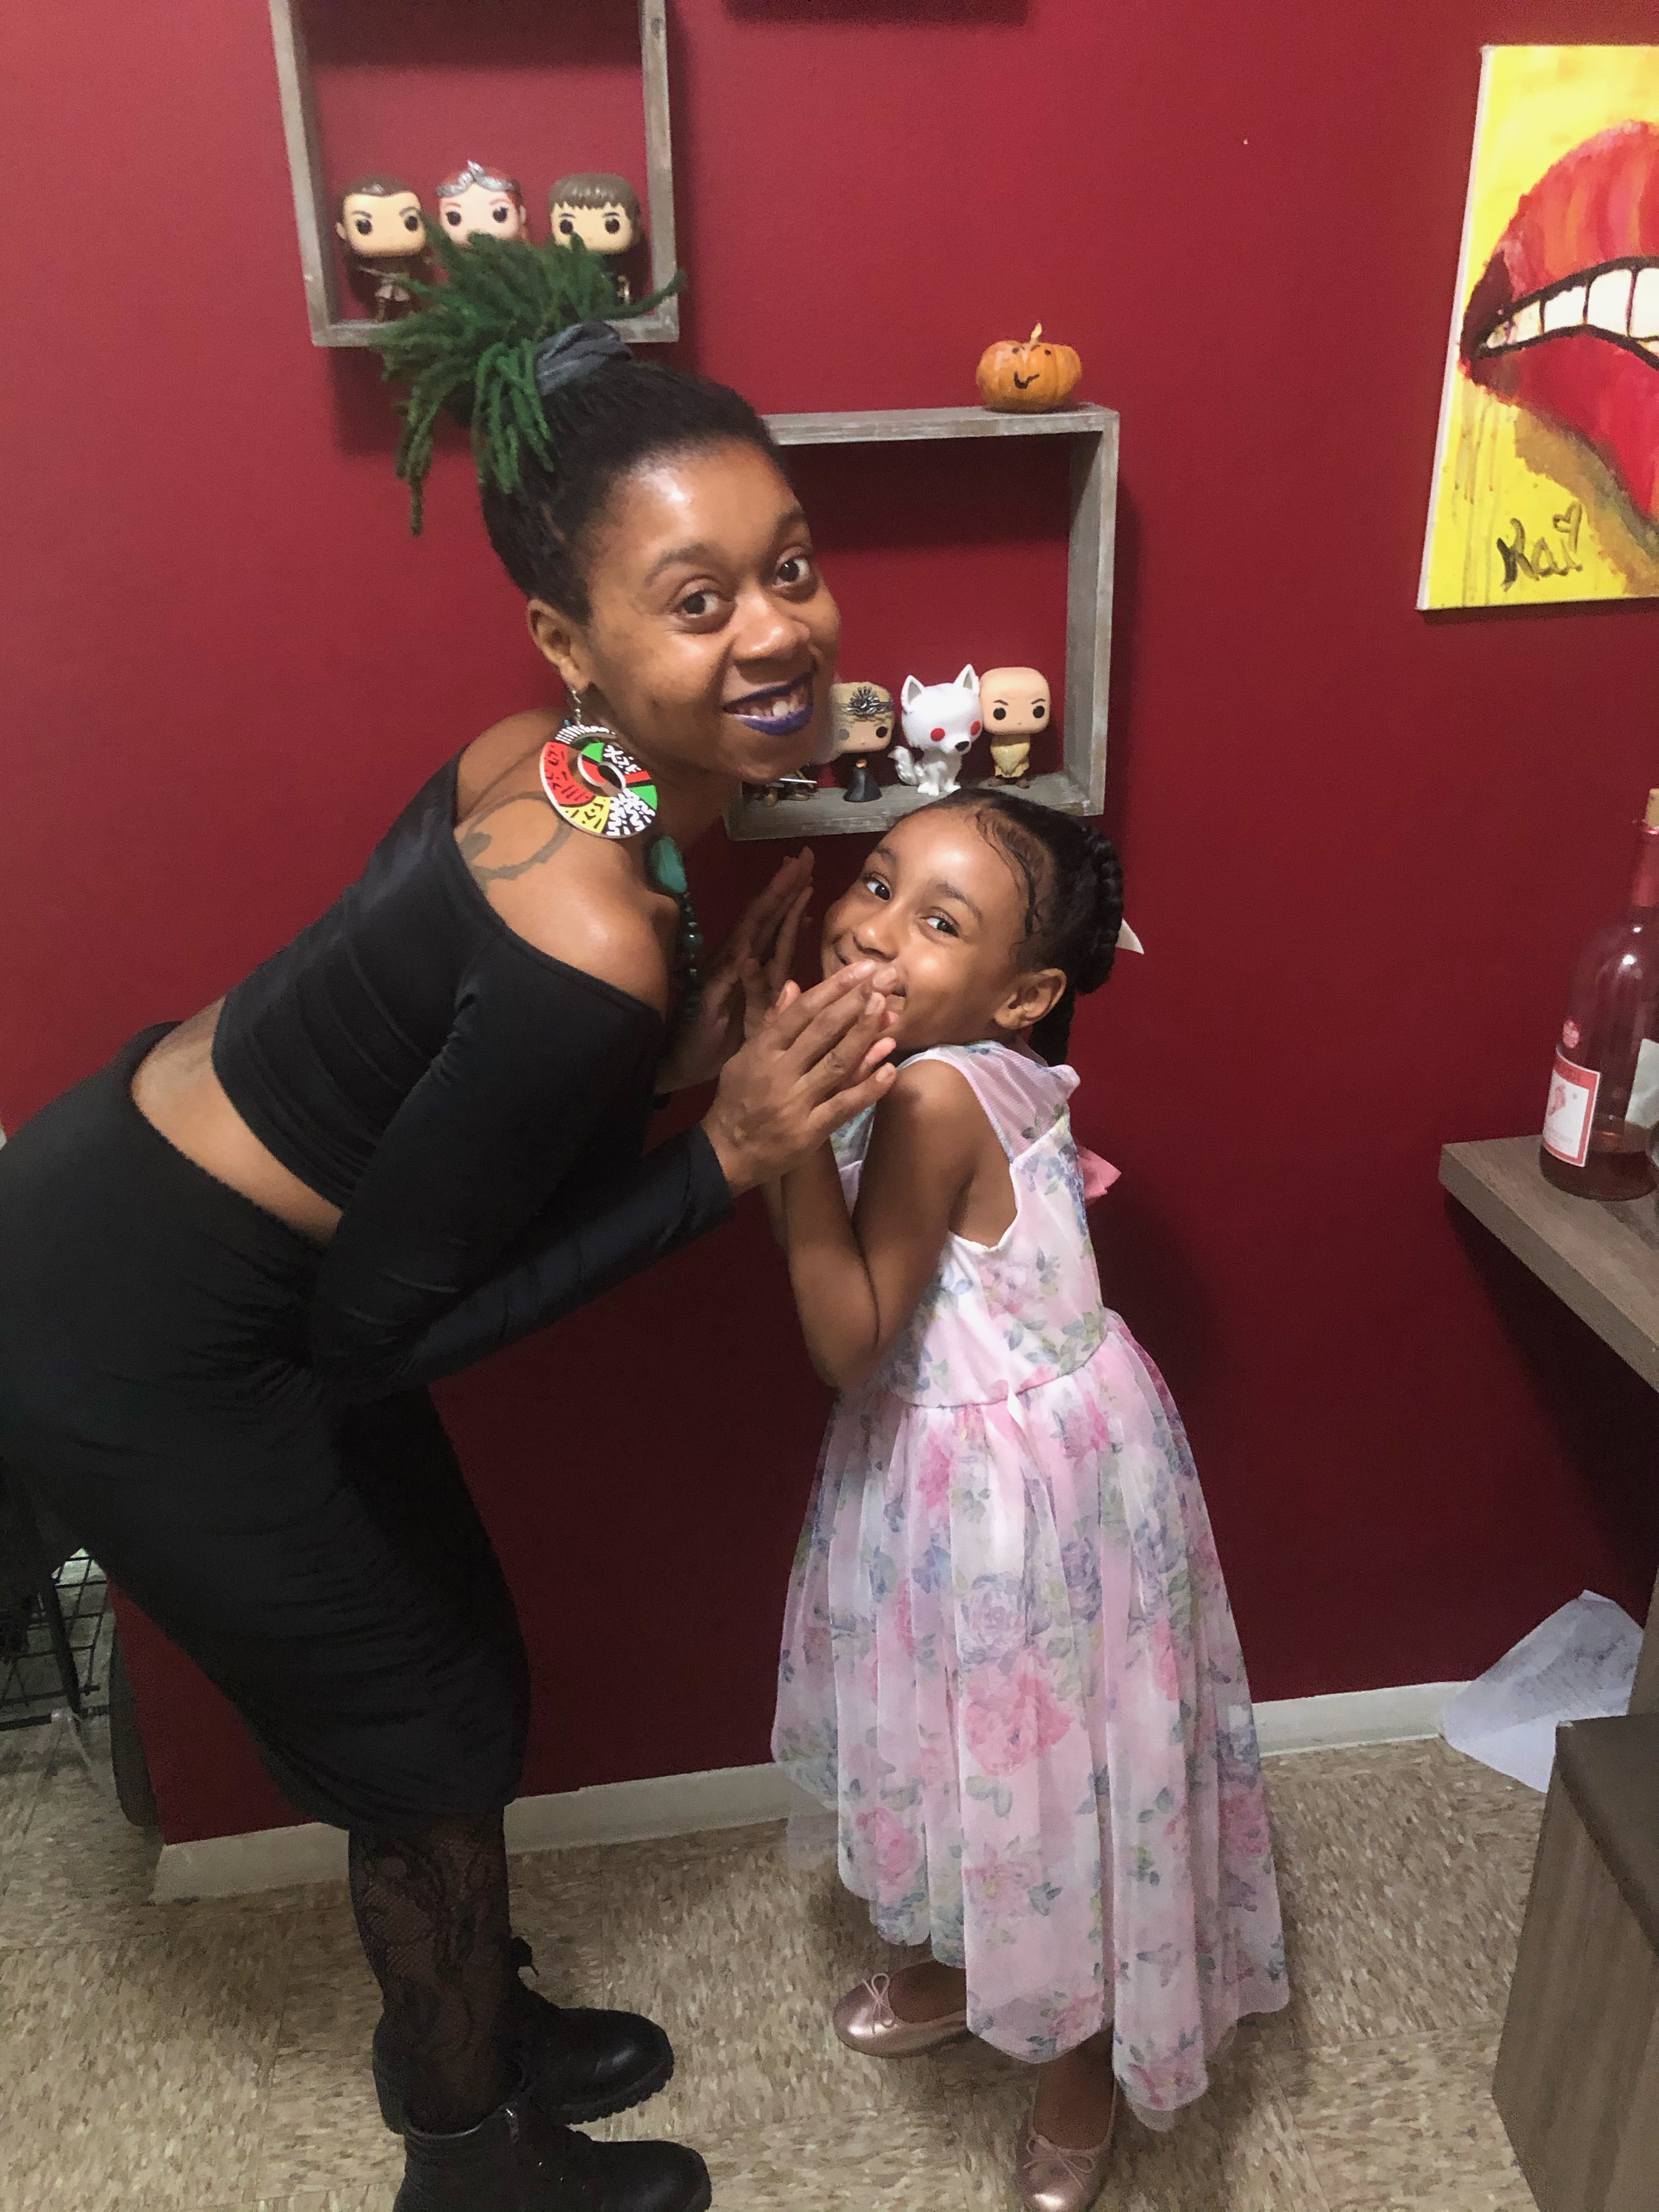 Me and Delilah on Thanksgiving